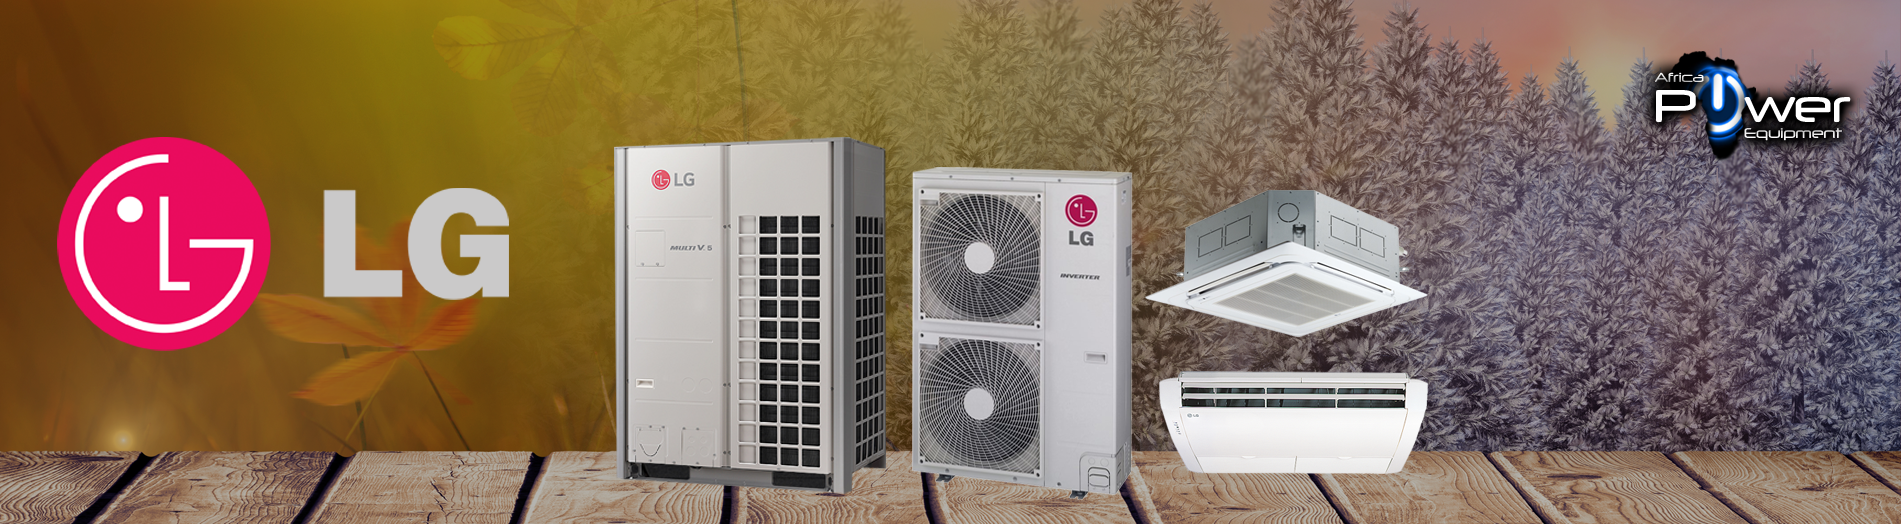 LG Air Conditioning South Africa: Life's Good with LG Air